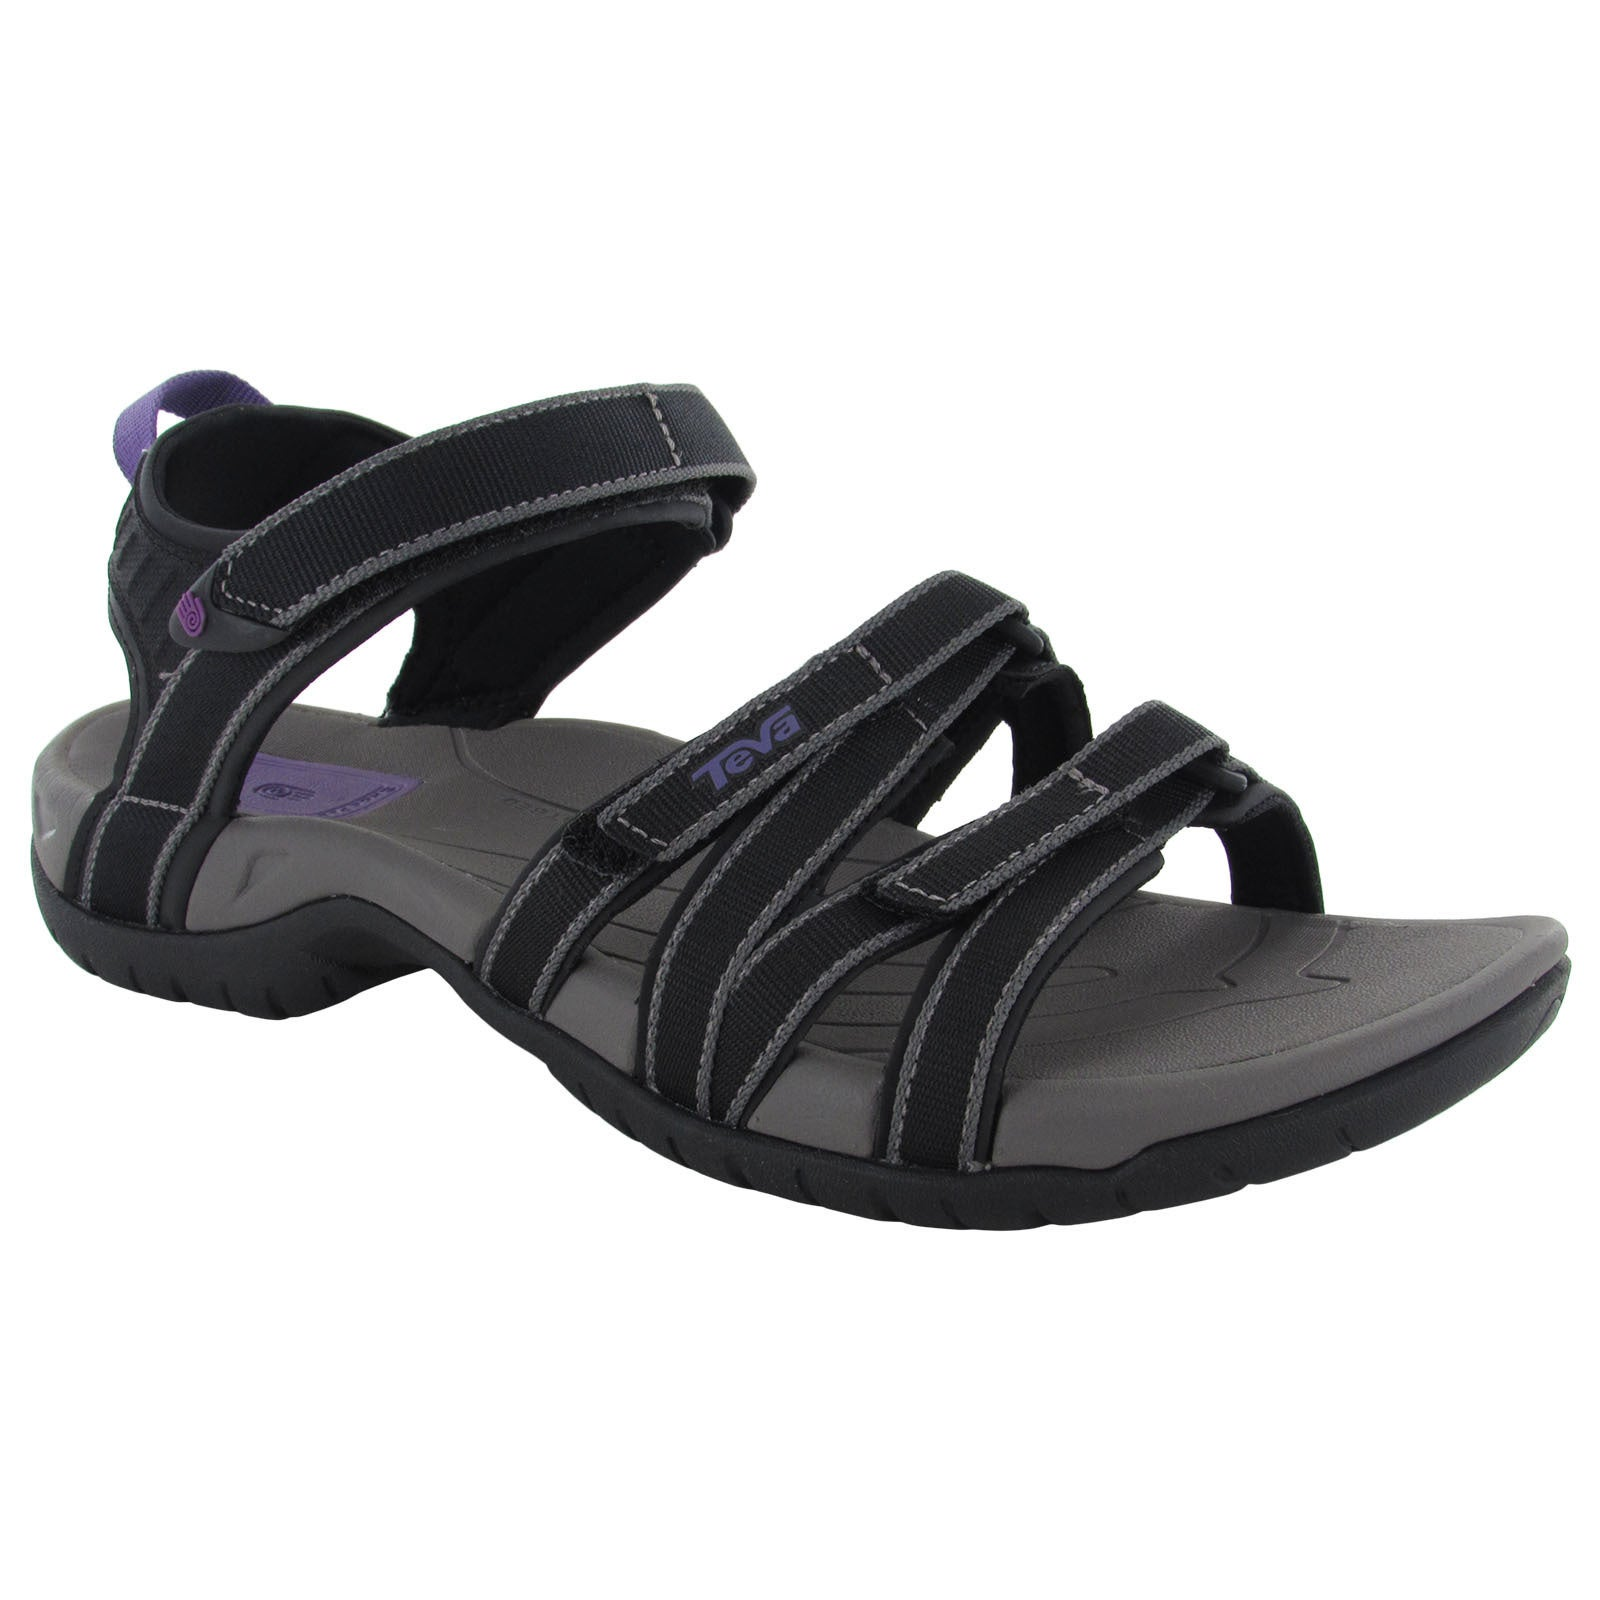 e00fca1600cf1 Shop Teva Womens Tirra Multi Purpose Athletic Sandals - Free Shipping On  Orders Over  45 - Overstock - 19808327